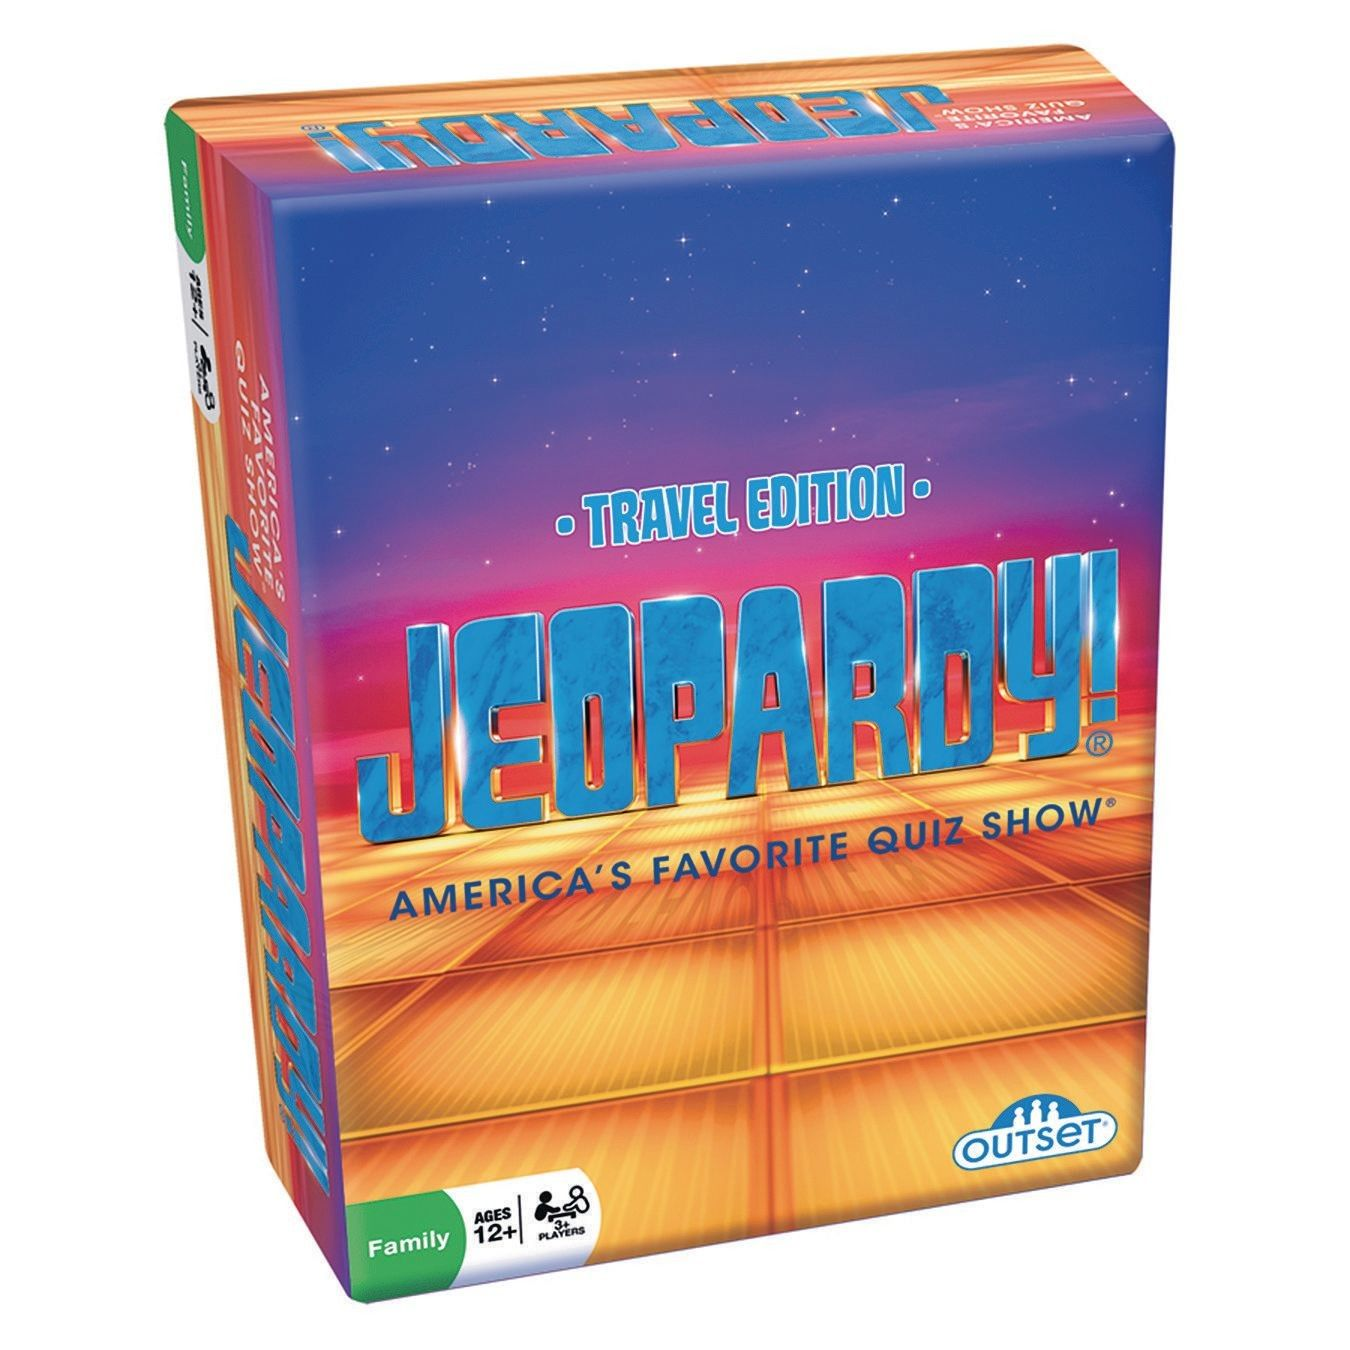 Jeopardy!® Card Game Travel games, Games